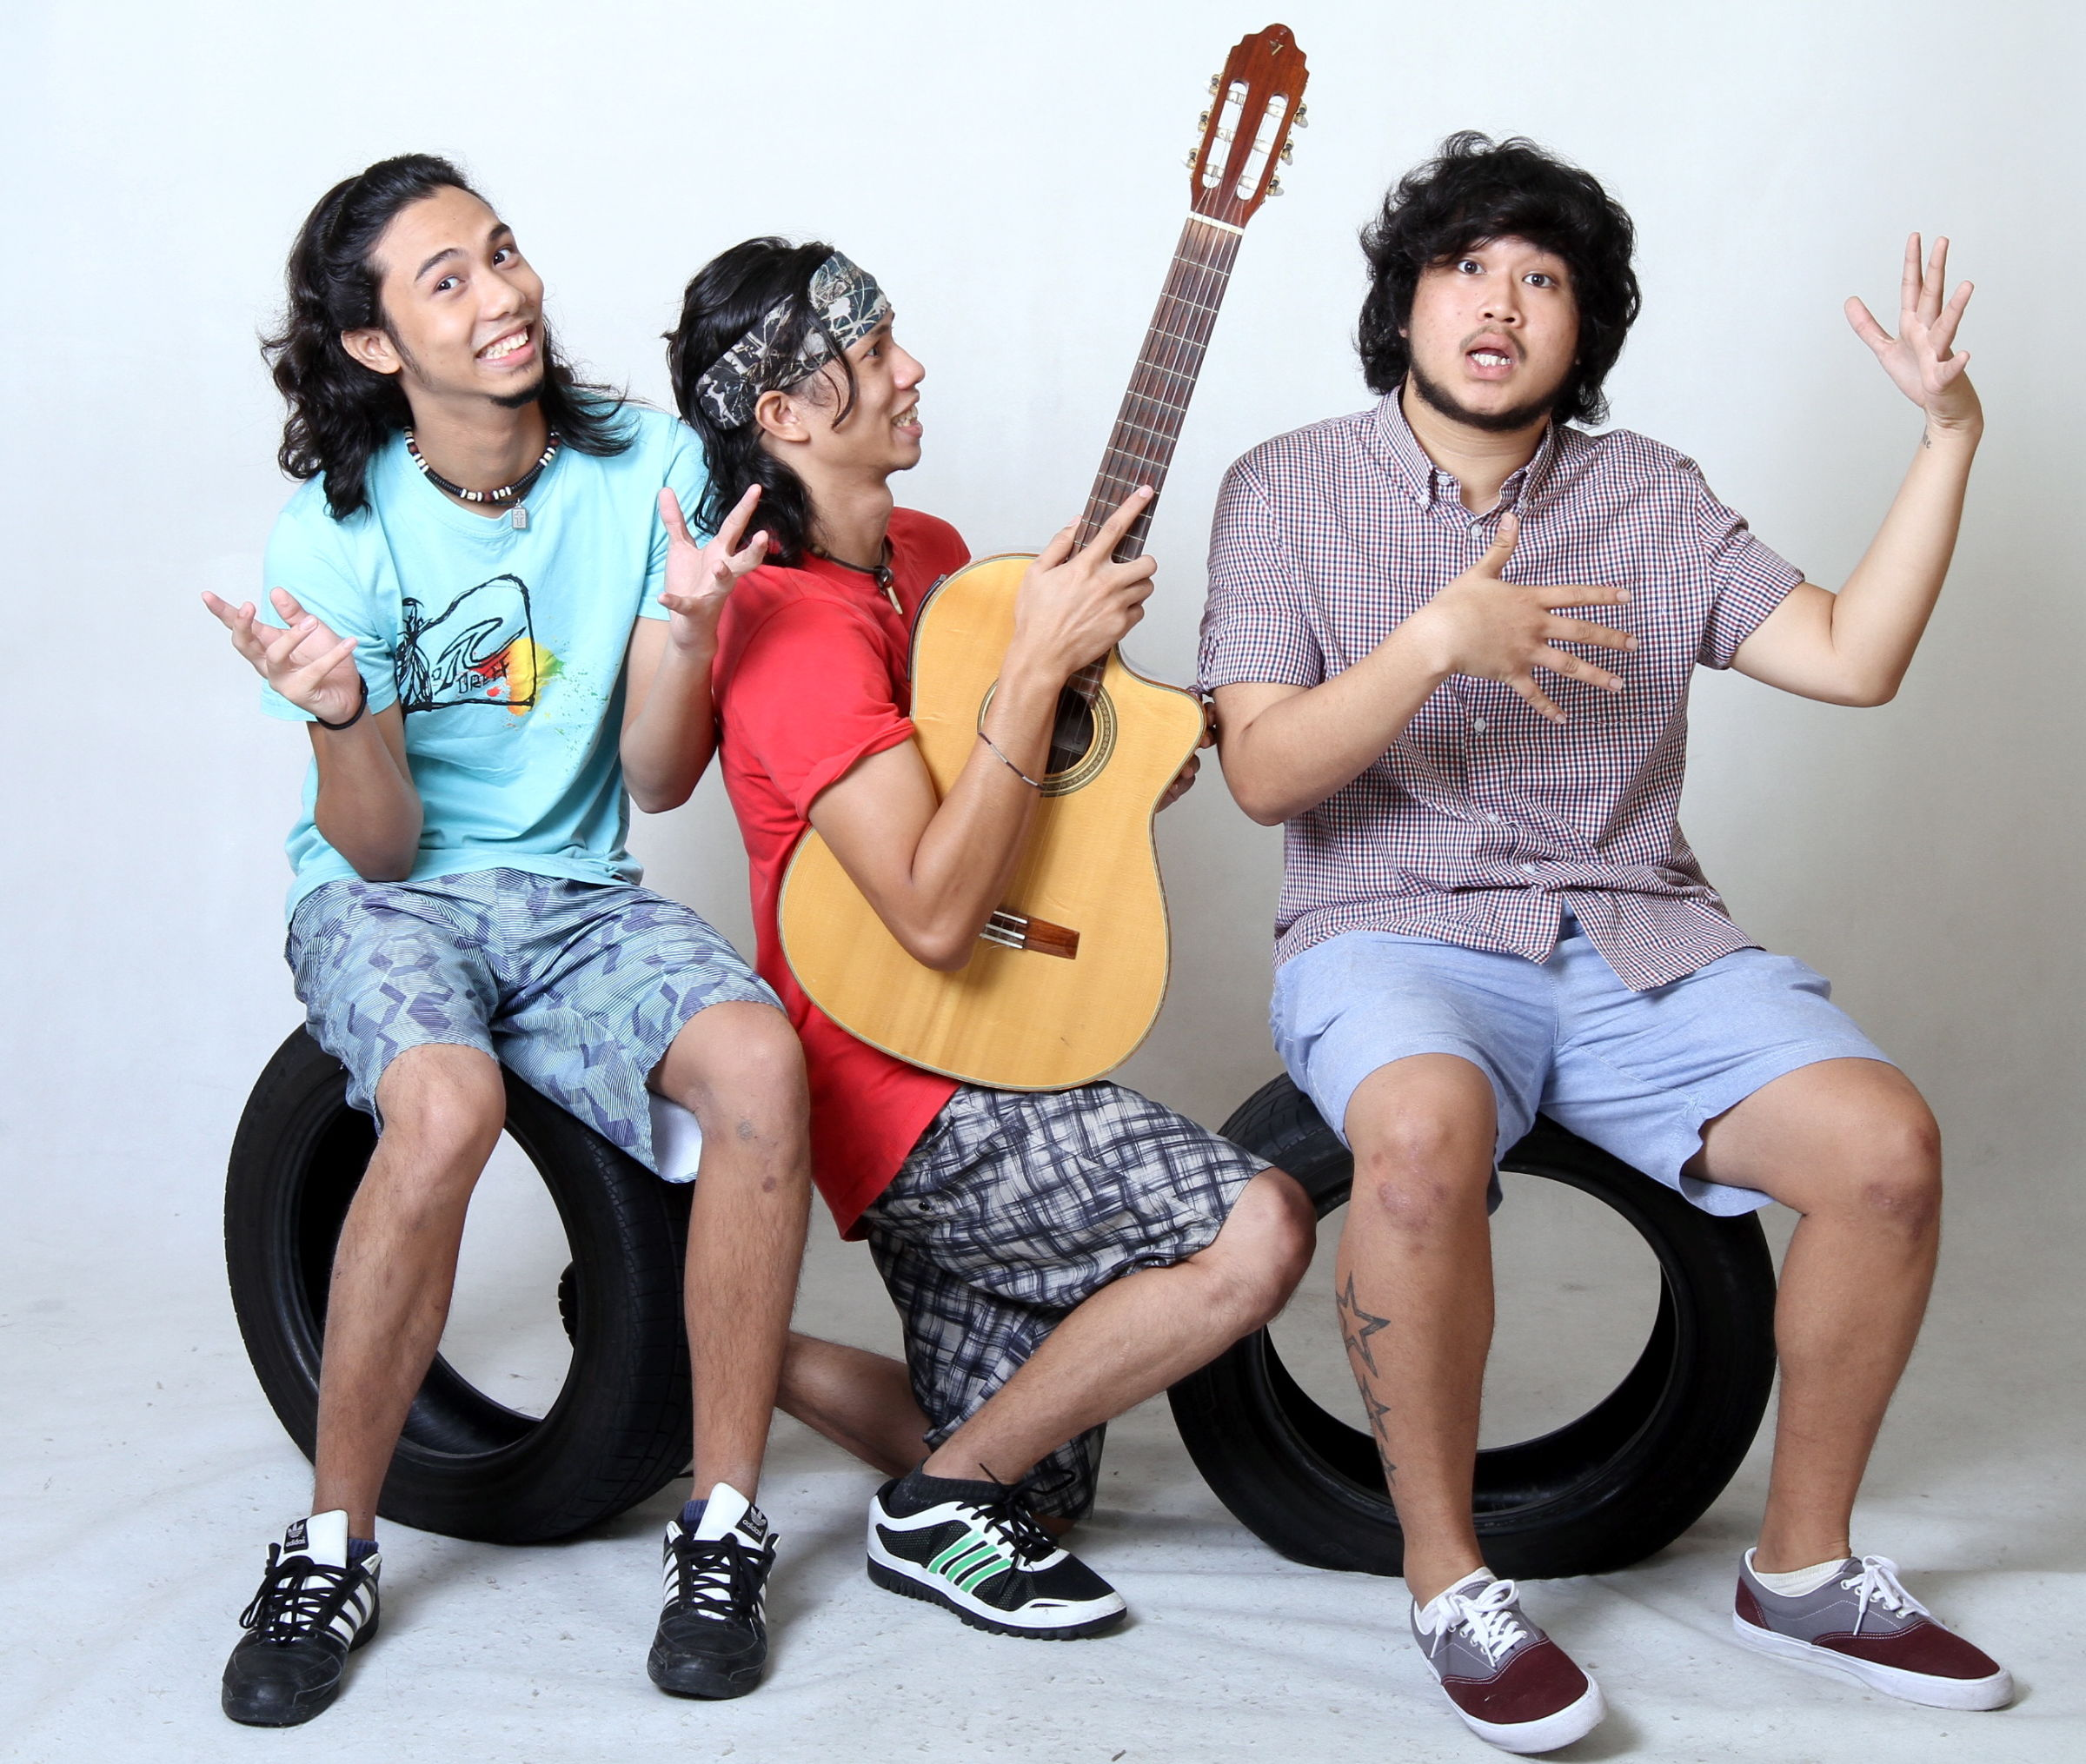 Indie band Jumero won a R.AGE competition to perform at Urbanscapes 2012, and they said it was a huge stepping stone for them.